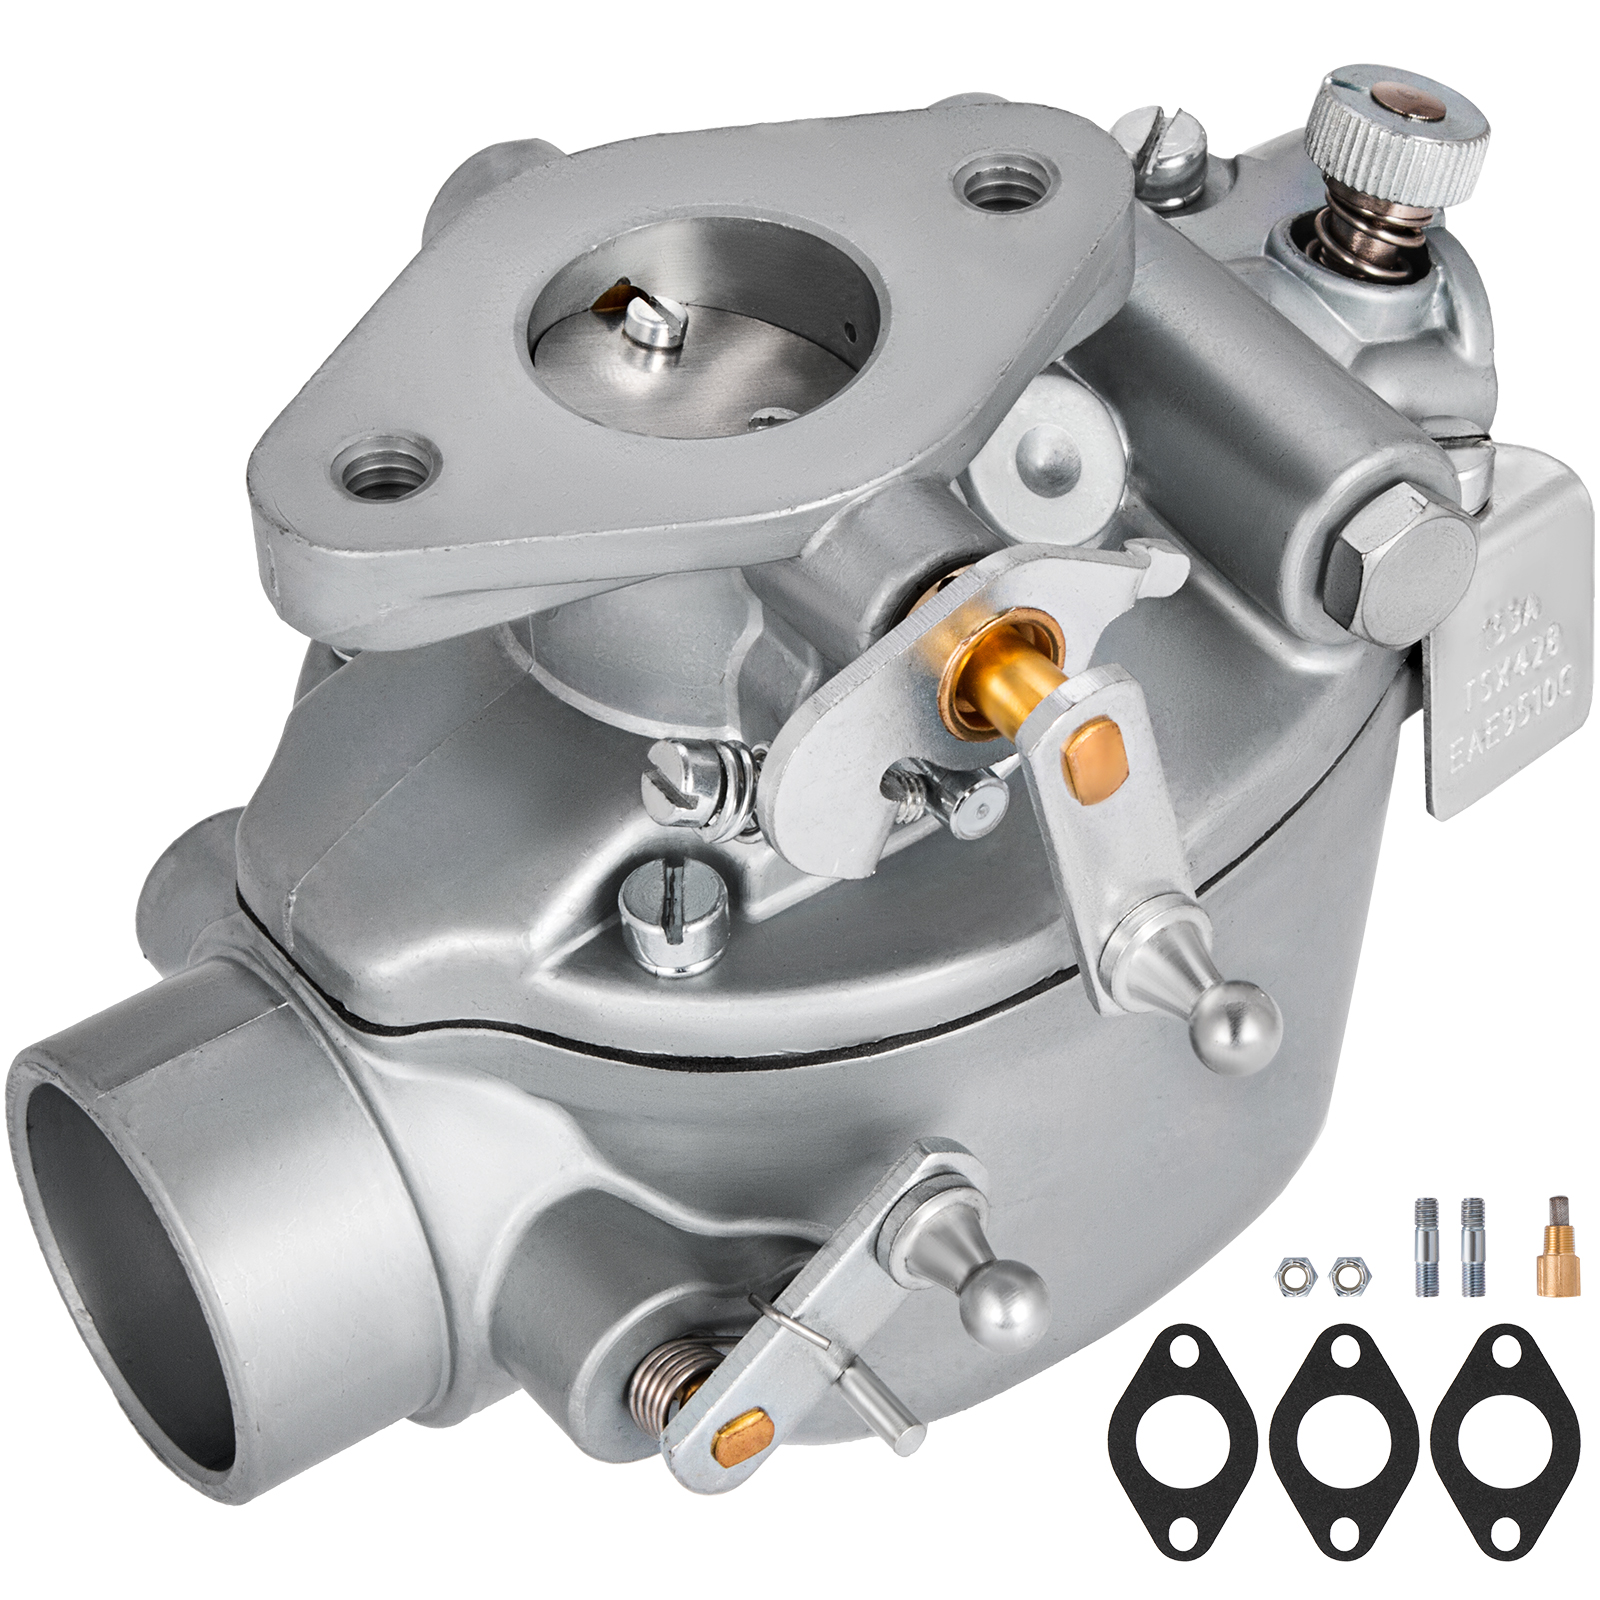 Carburetor Carb Replacement for Vintage Ford Tractor Marvel Schebler NAA NAB Jubilee TSX428 Engine Accessories